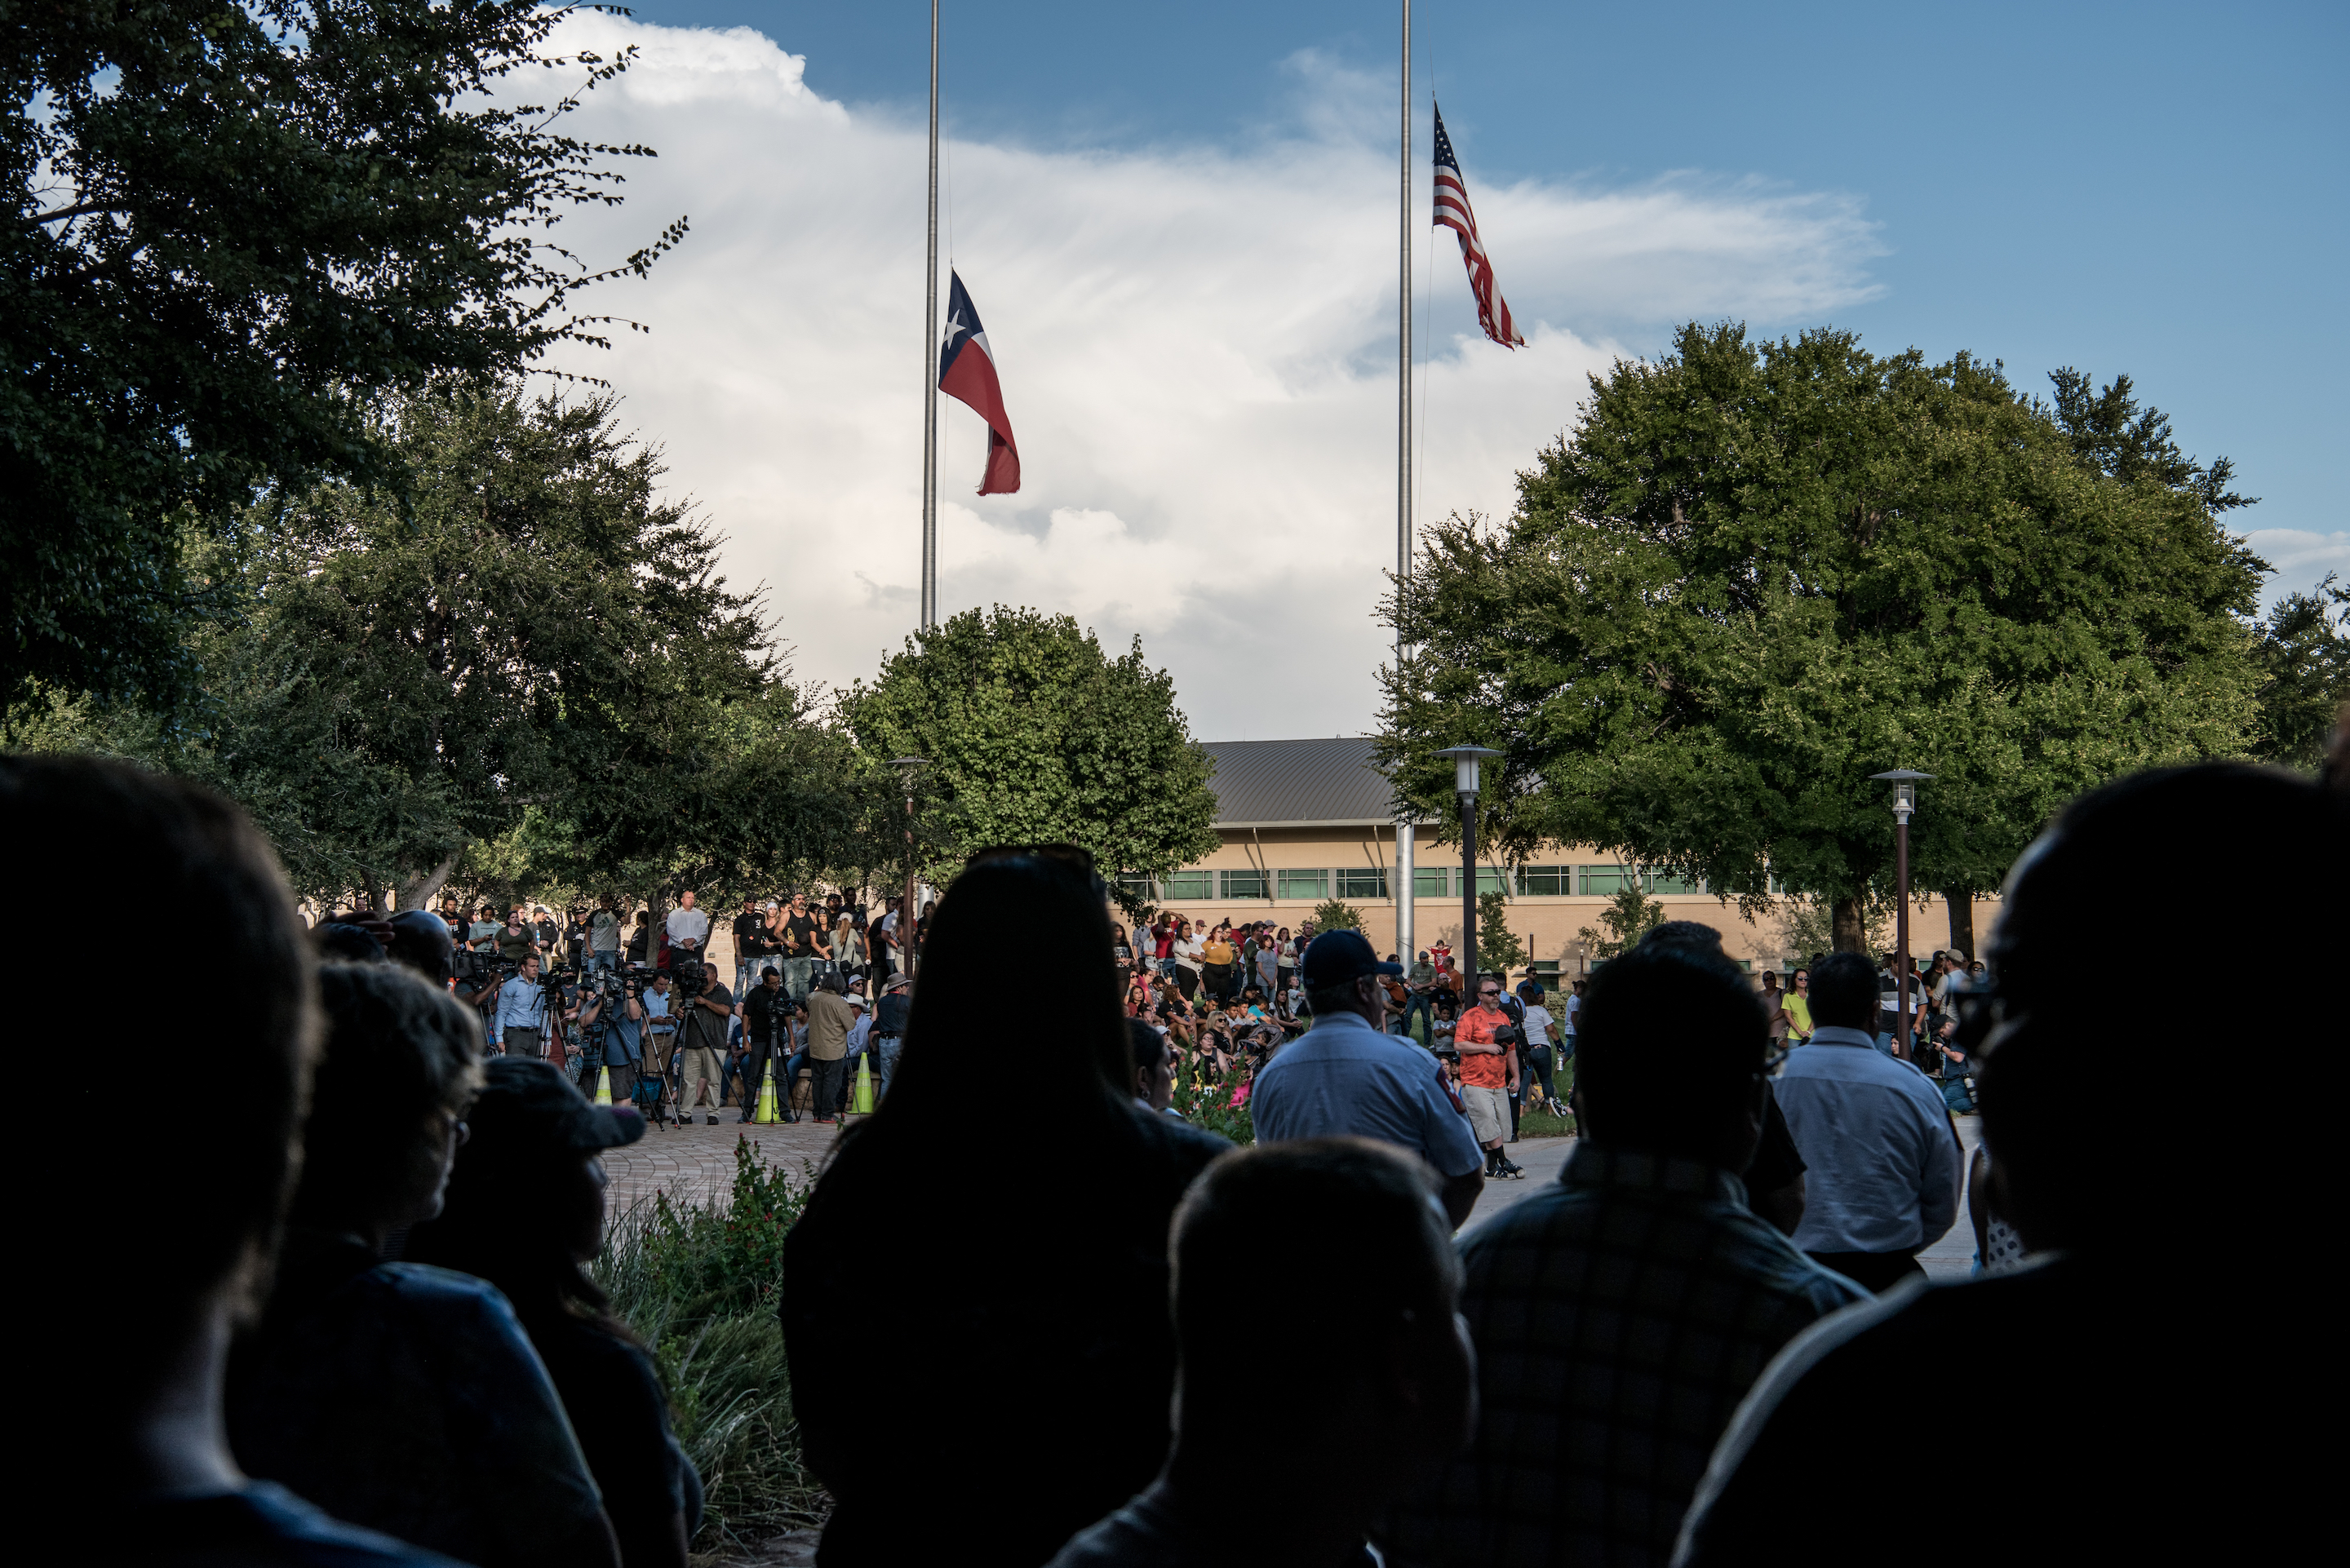 Flags fly at half mast over a prayer vigil at the University of Texas of the Permian Basin (UTPB) for the victims of a mass shooting, September 1, 2019 in Odessa, Texas.